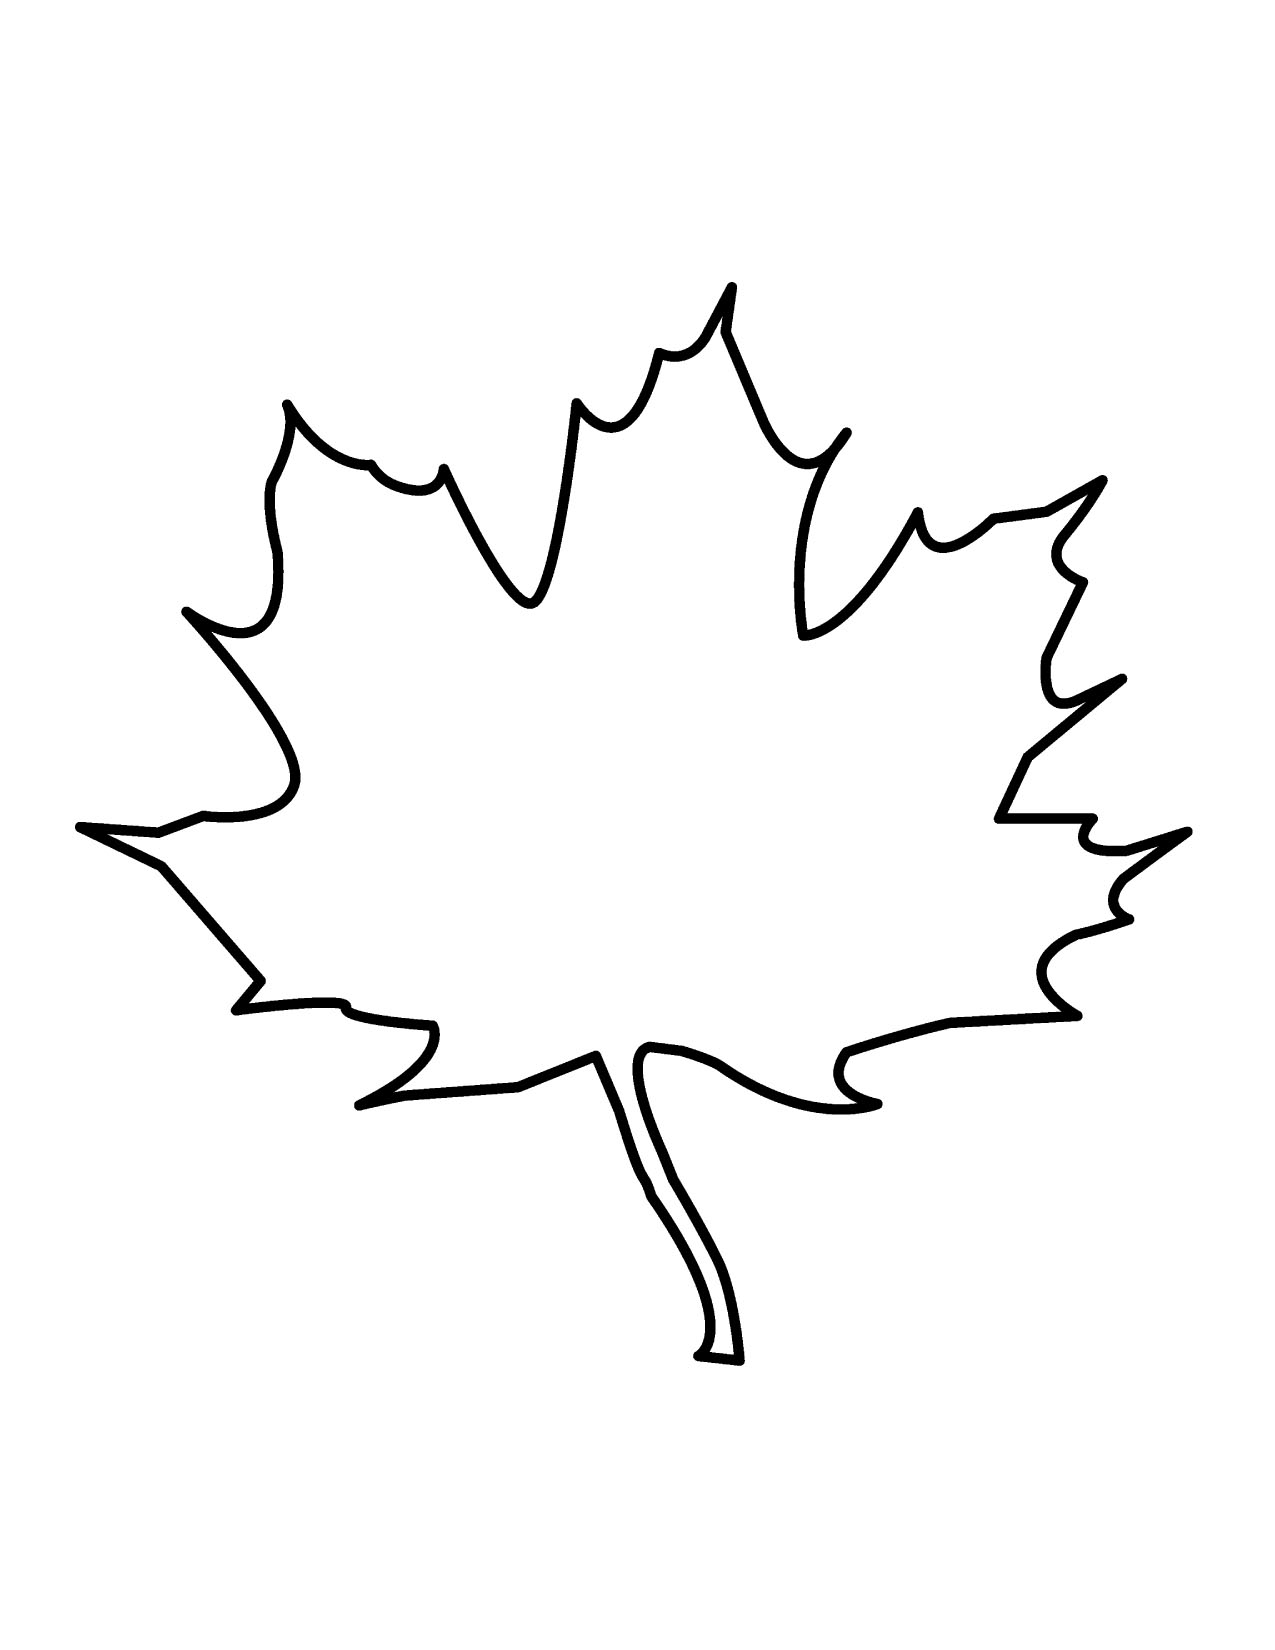 Free Maple Leaf Outline, Download Free Clip Art, Free Clip.